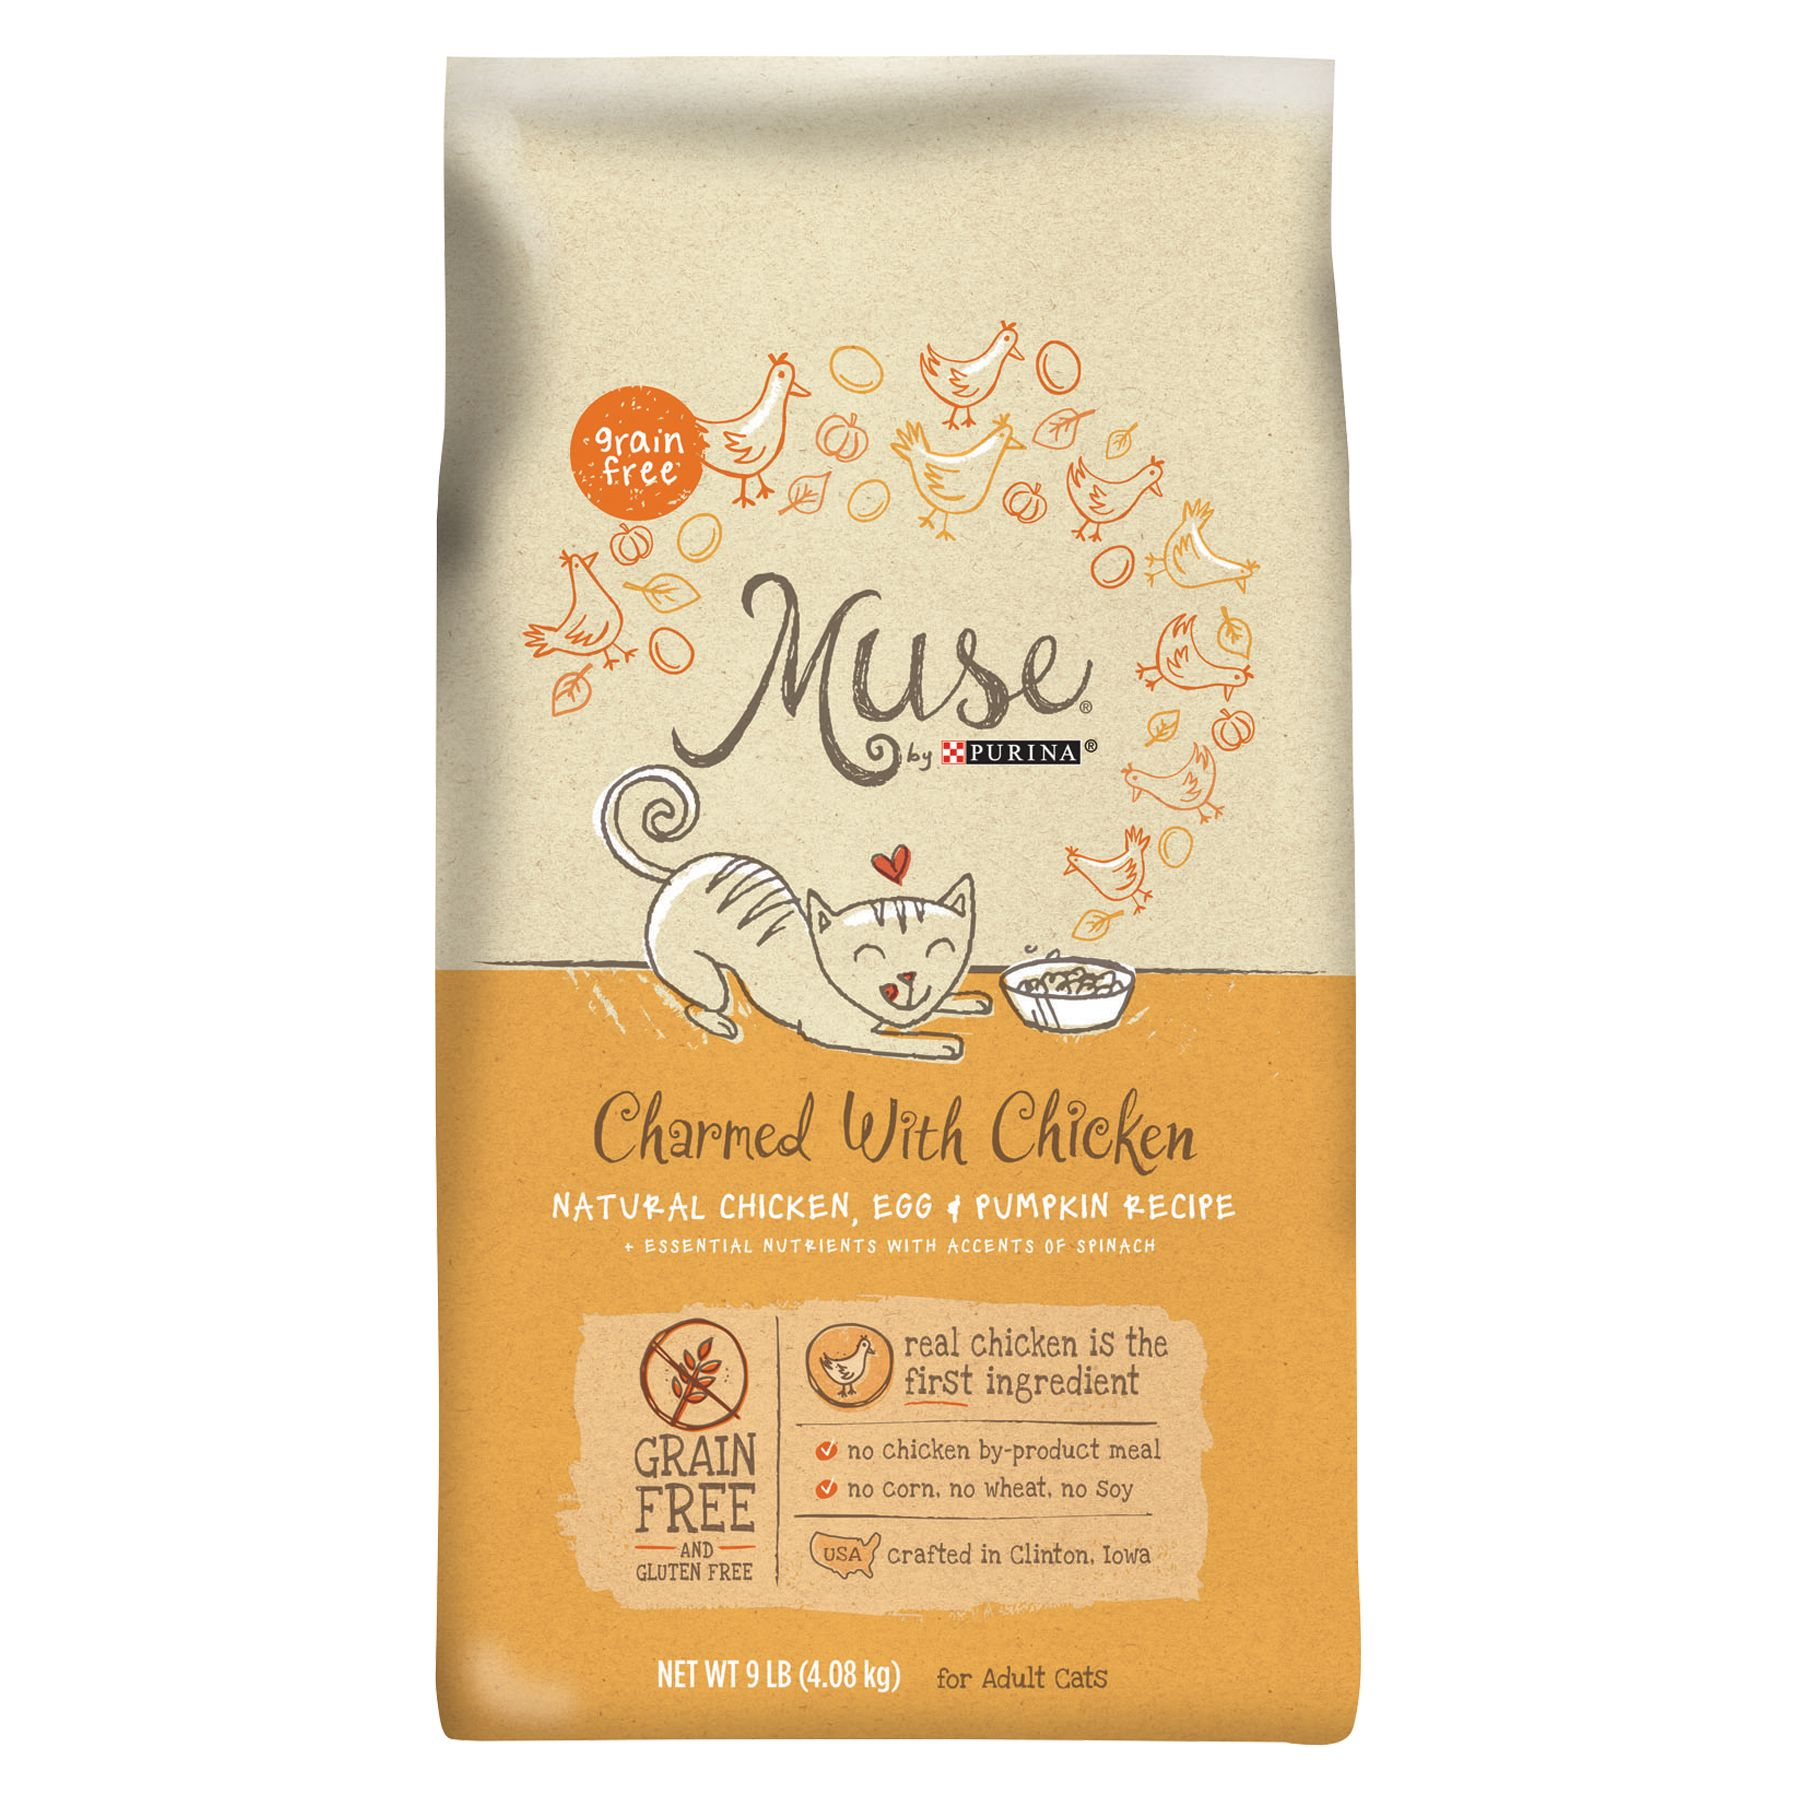 Muse Adult Cat Food Grain Free Gluten Free Essential Nutrients Natural Chicken Egg And Pumpkin Size 9 Lb